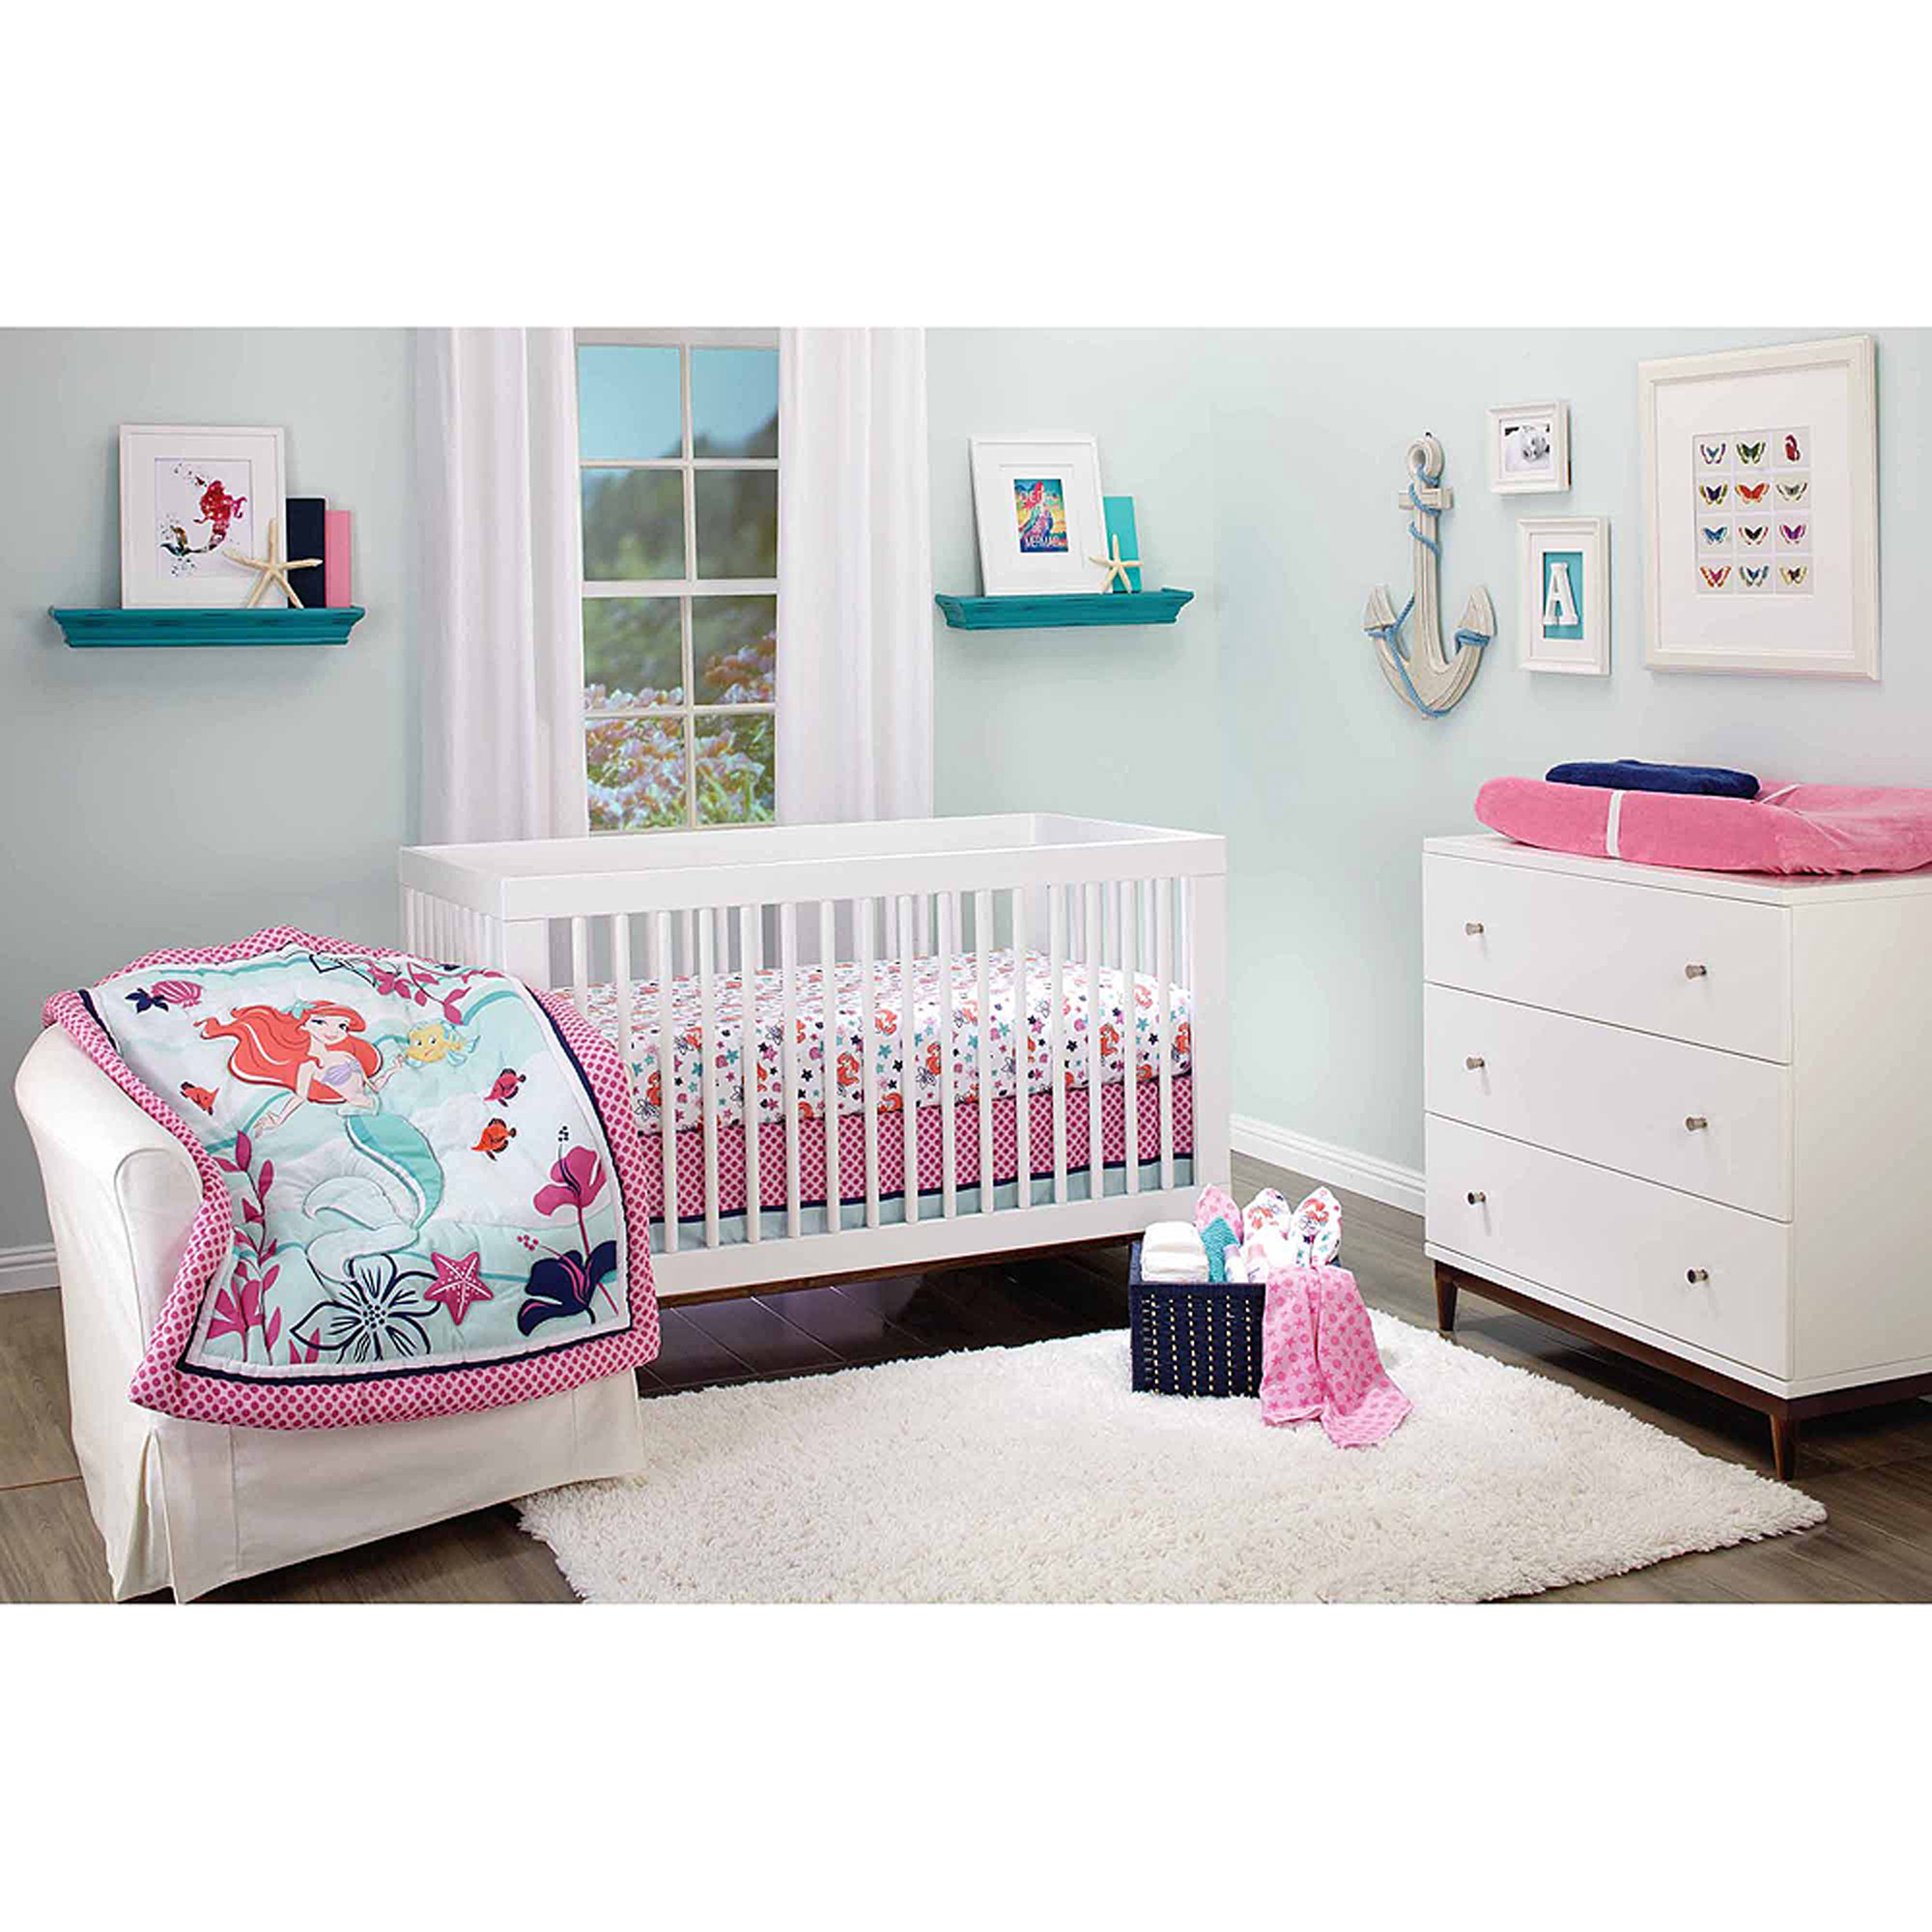 Crib bedding sale uk - Crib Bedding Sale Uk 20